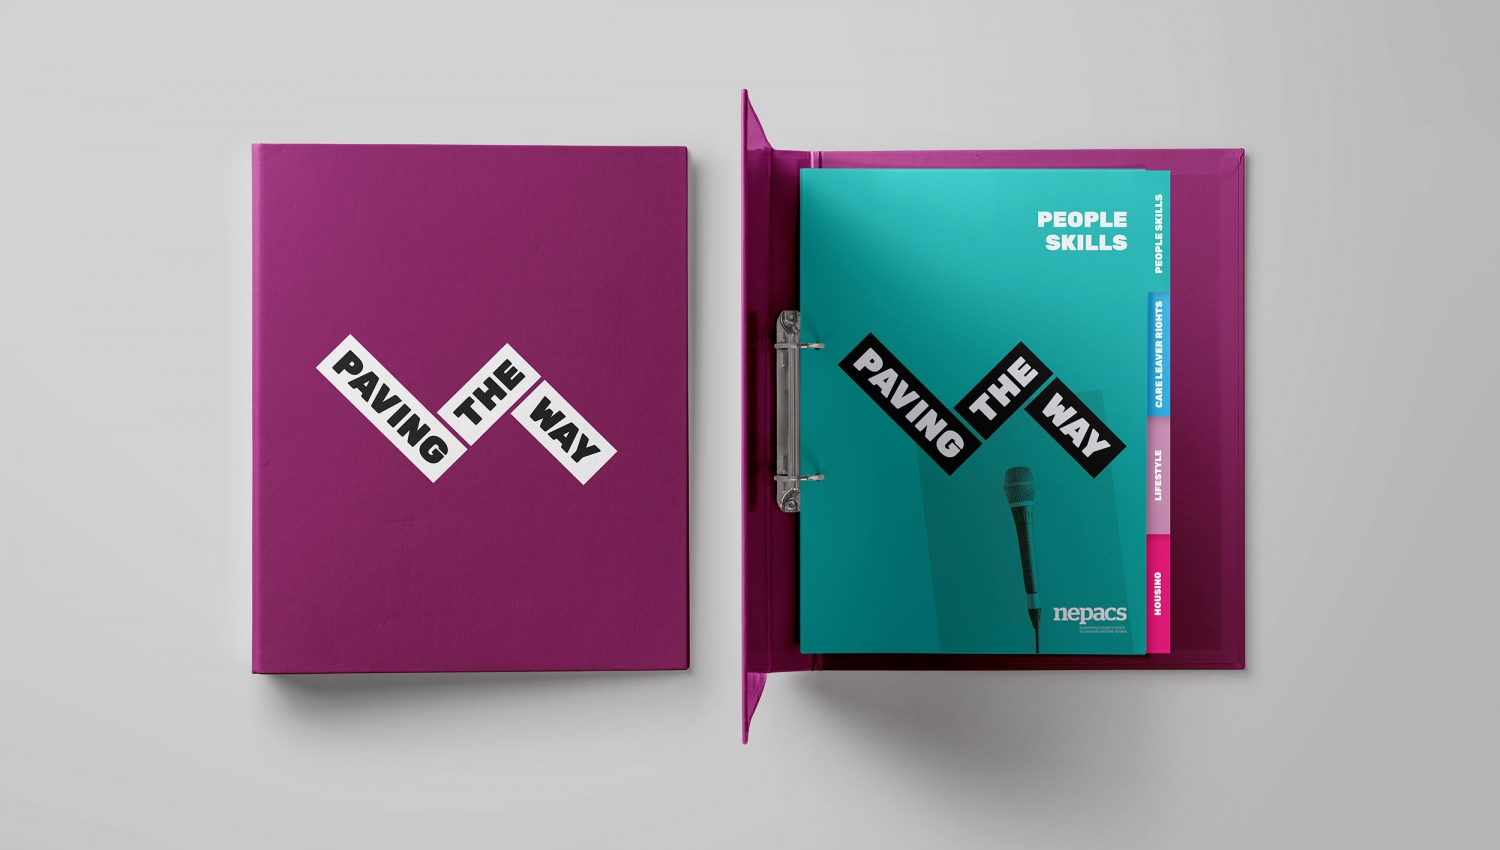 Nepacs charity prison resource programme and activity pack branding by Altogether Creative.